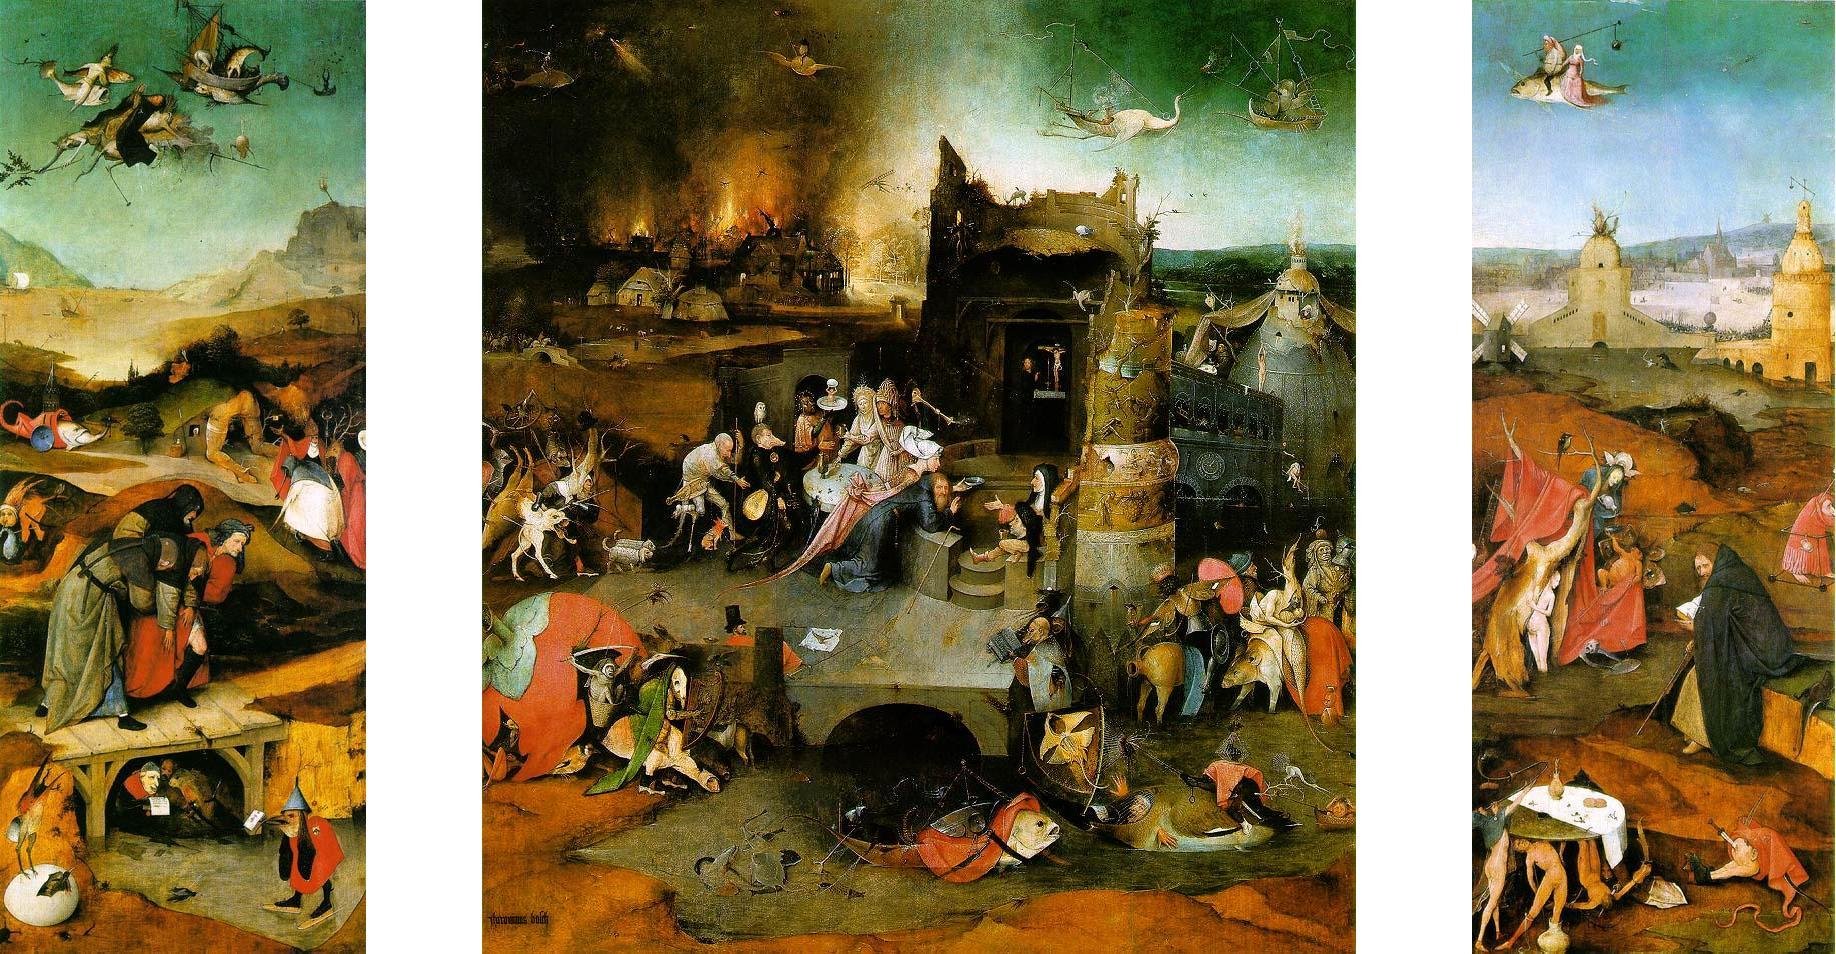 http://uploads2.wikipaintings.org/images/hieronymus-bosch/triptych-the-temptation-of-st-anthony-1516.jpg